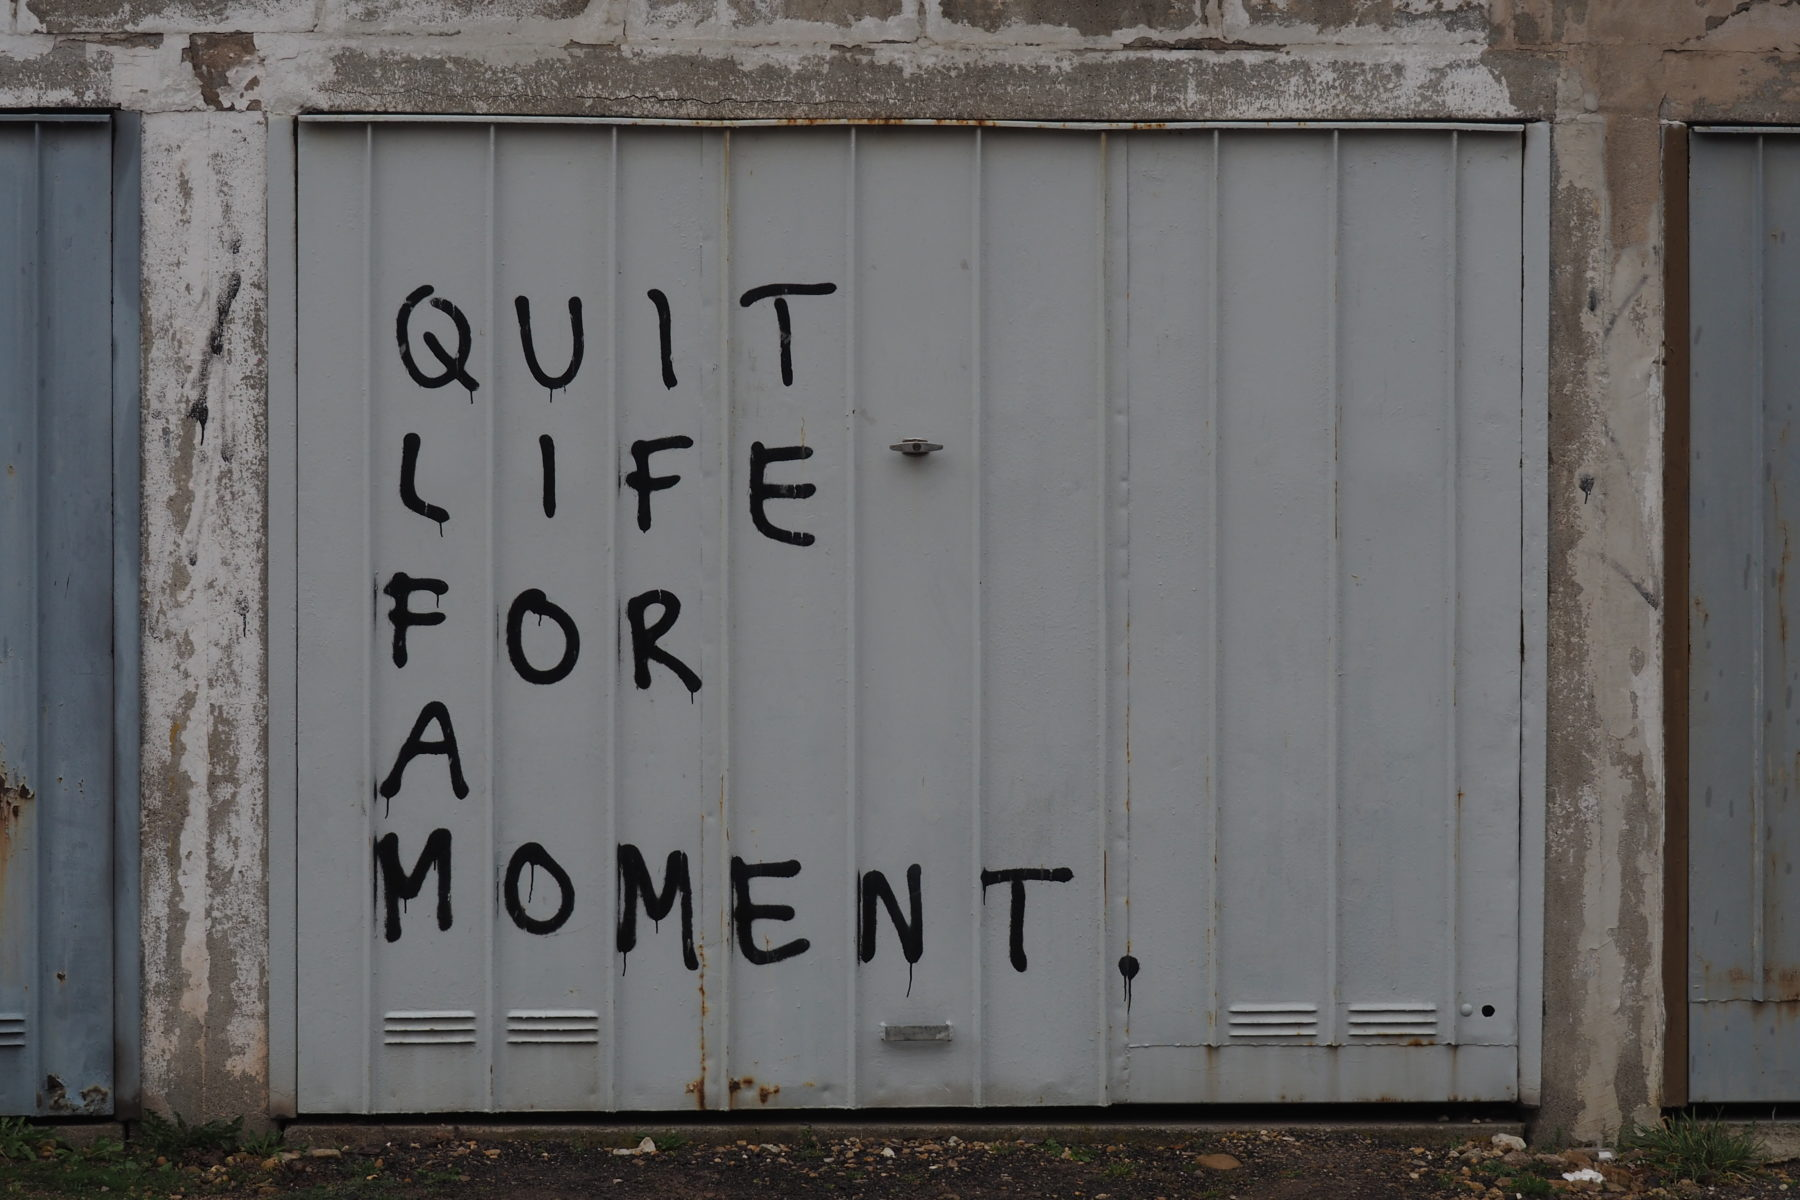 Quit Life for a moment (Foto: Jörg Haas)